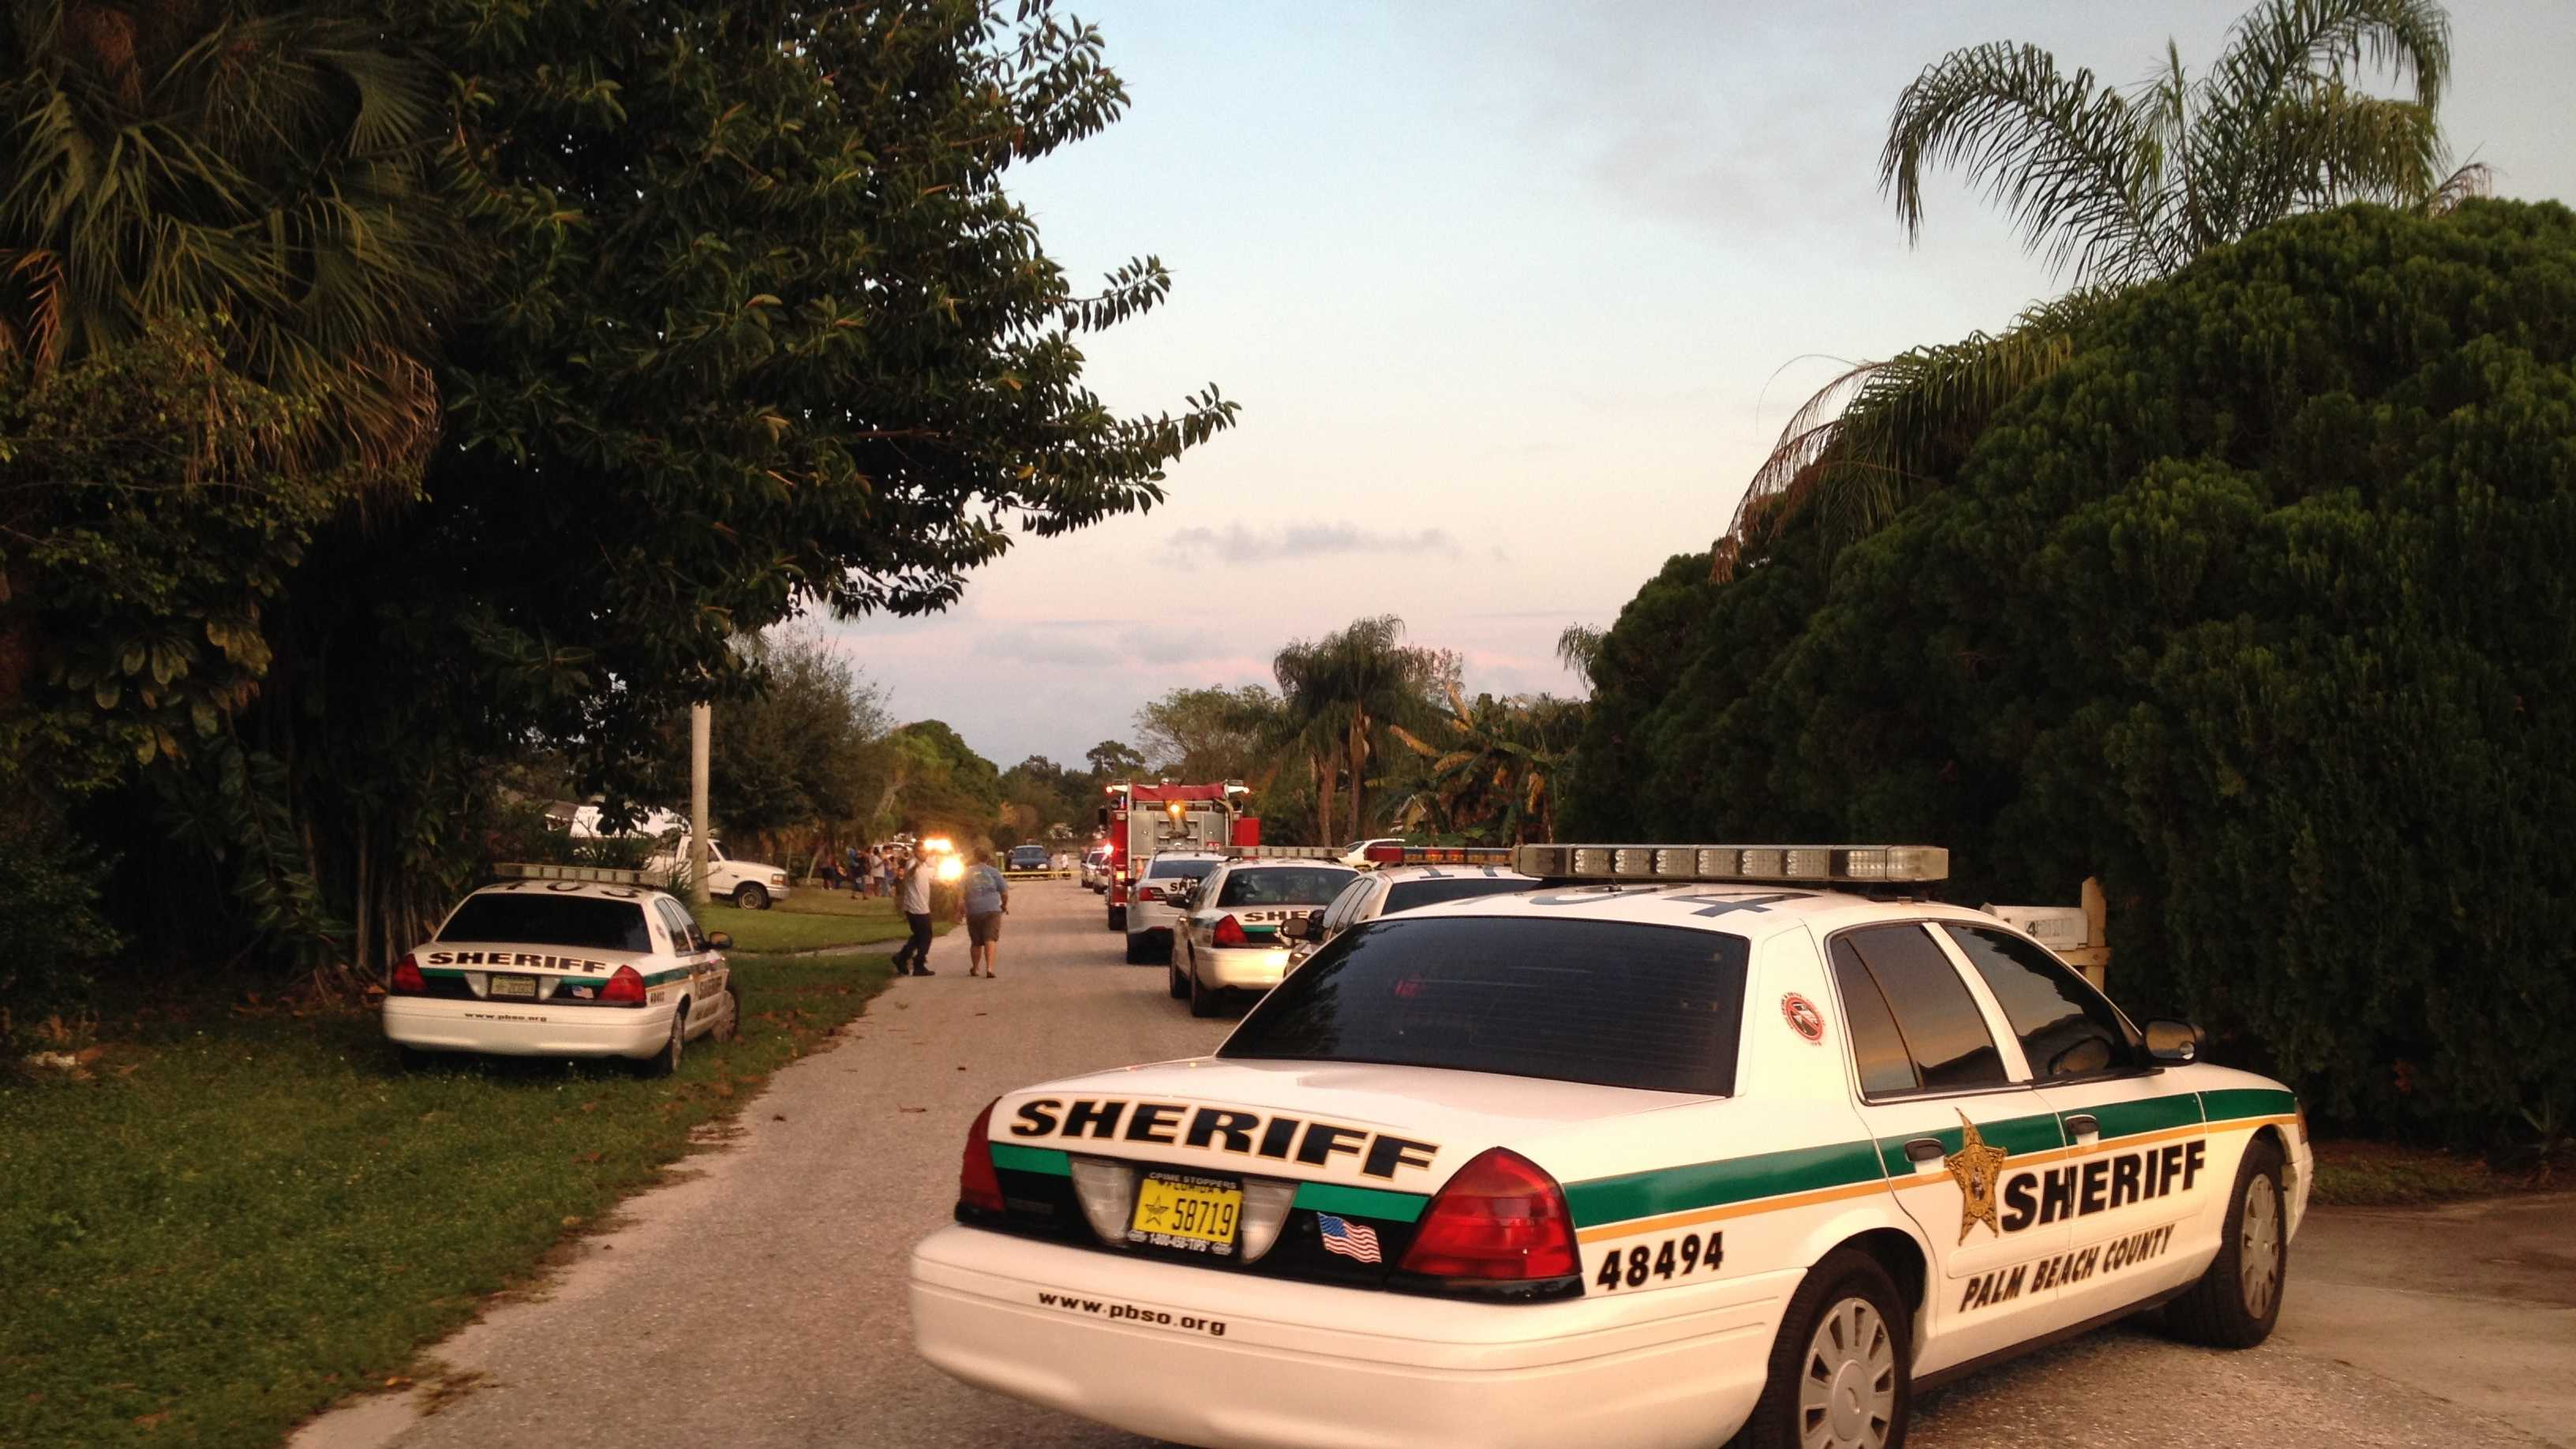 Detectives are investigating a domestic-related shooting in Lake Worth.